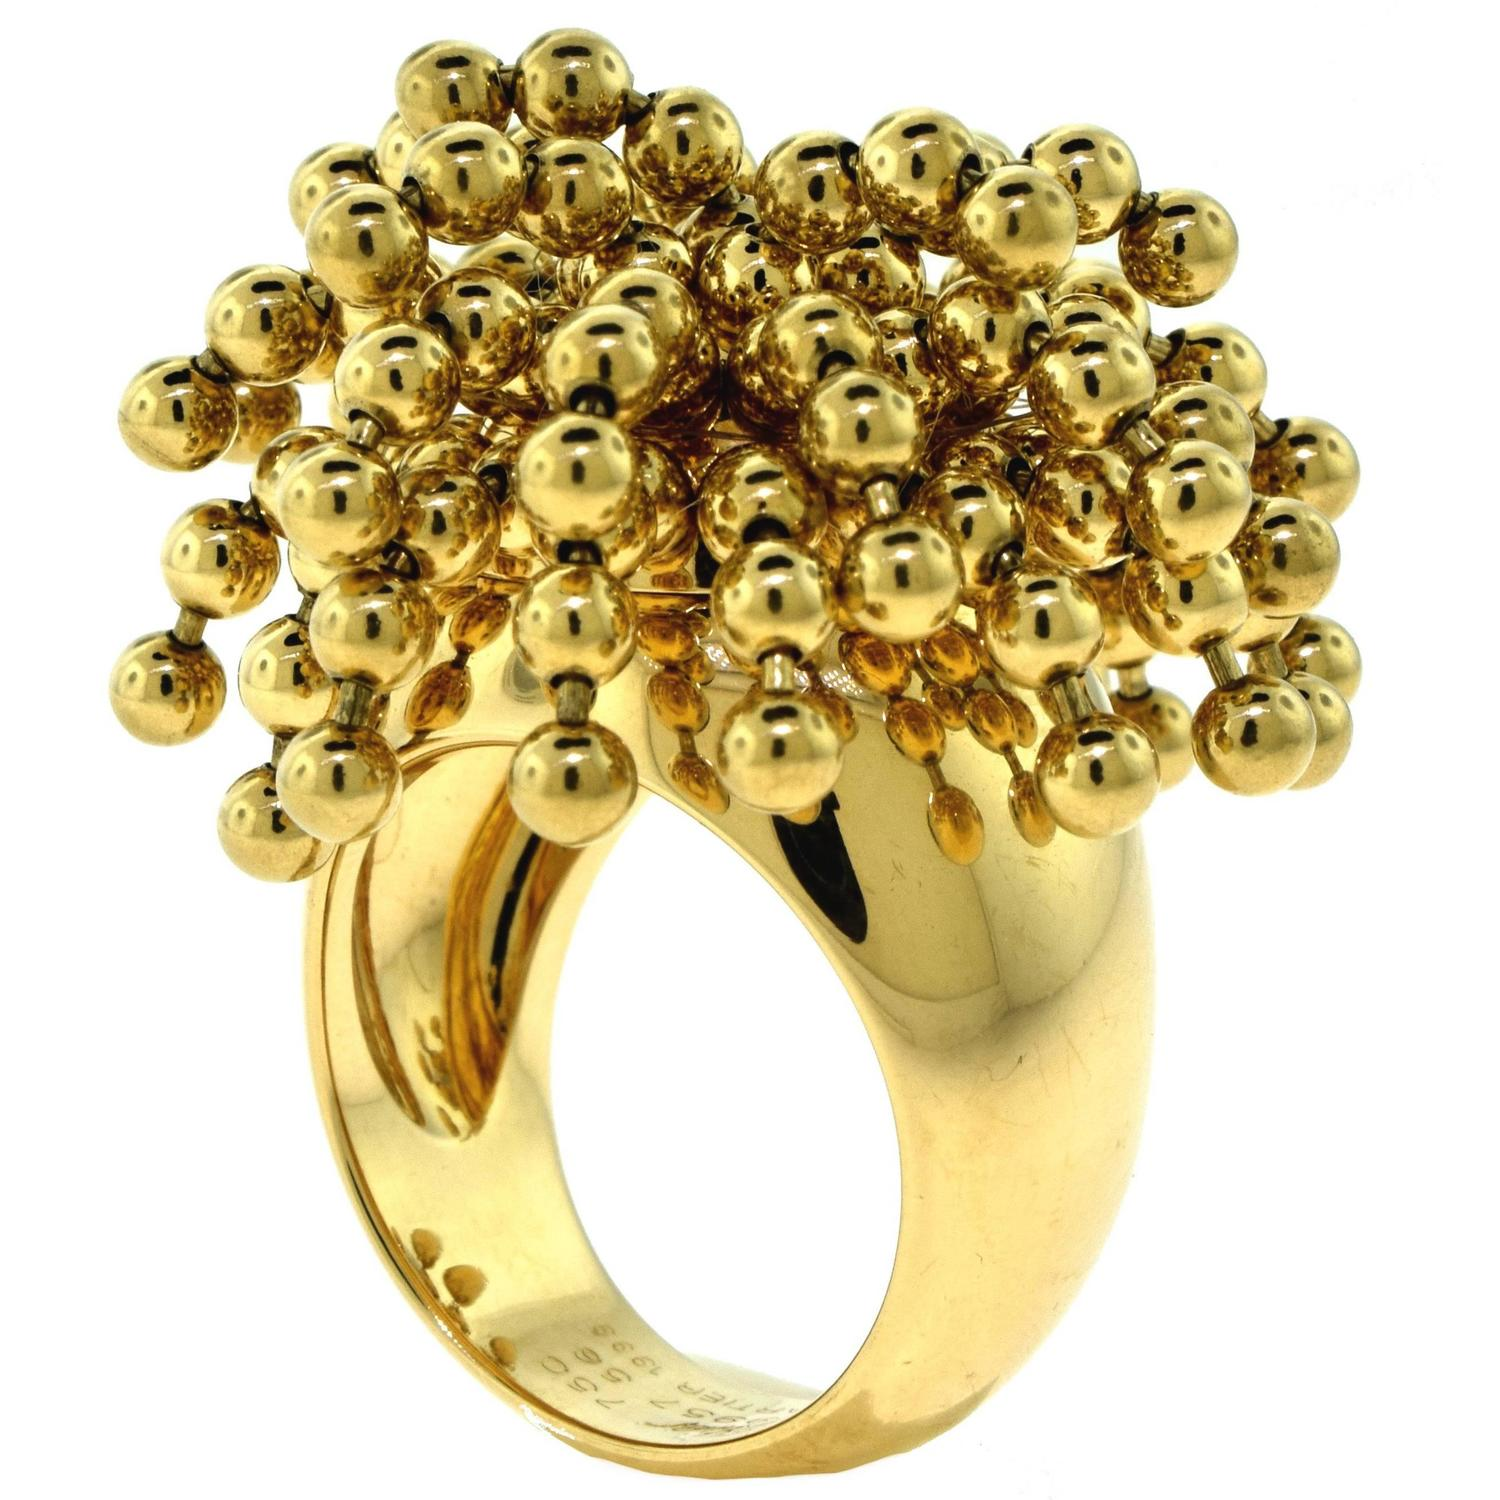 Yafa signed jewels new york ny 1stdibs page 4 - Cartier Yellow Gold Nouvelle Vague Perruque Wig Ring